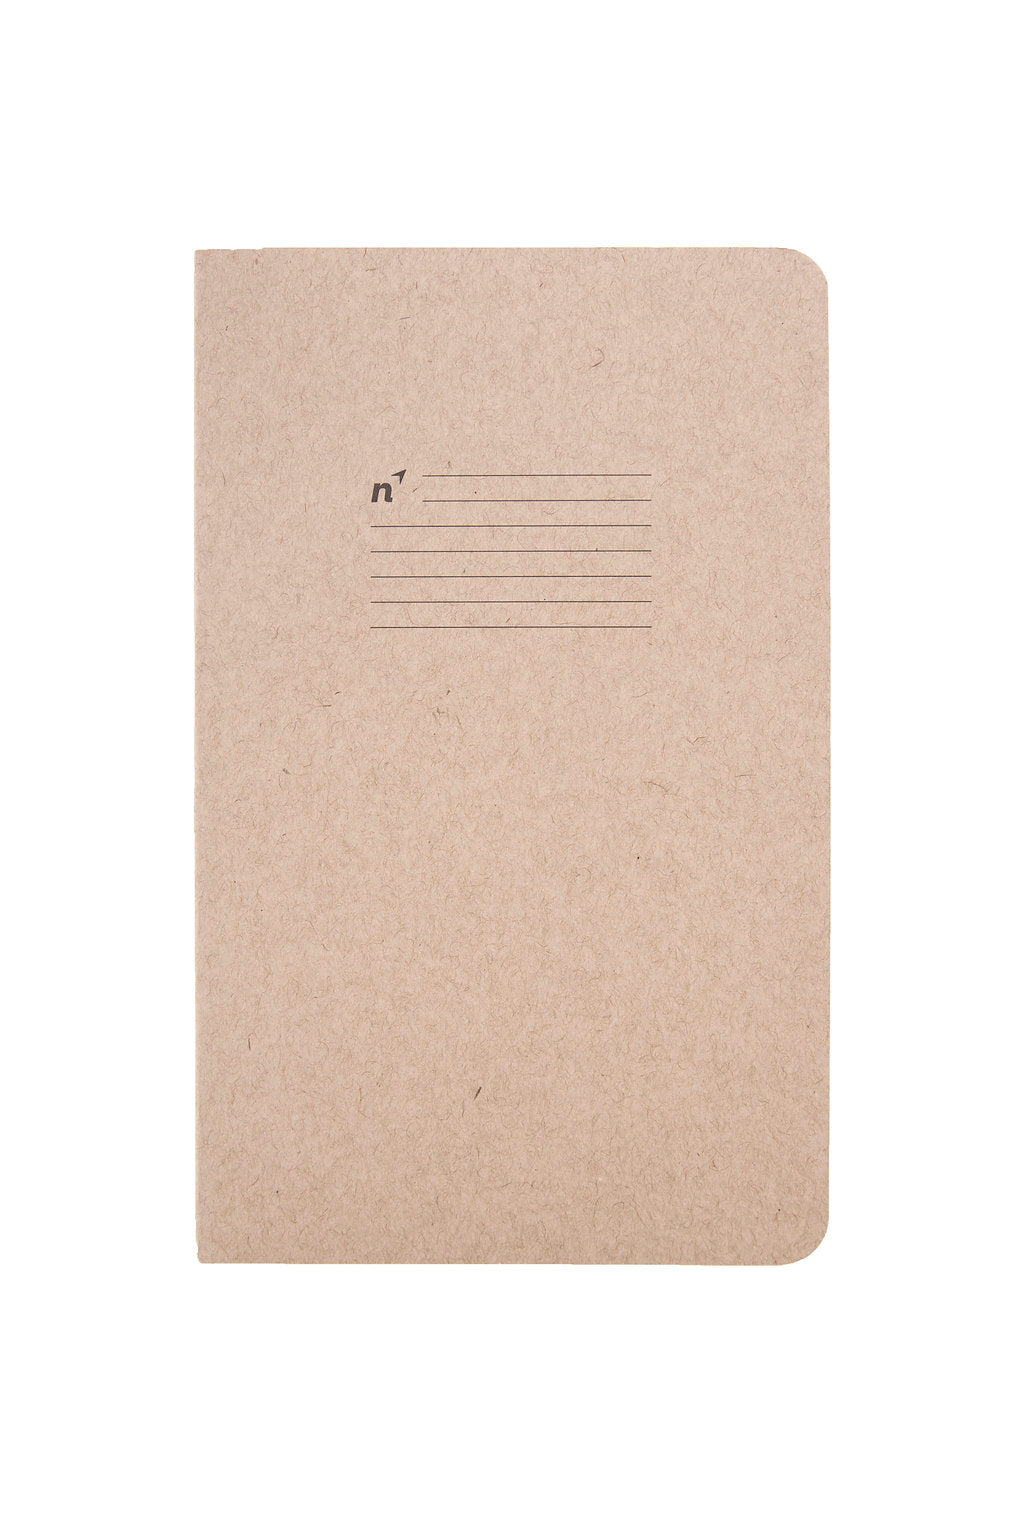 Lines 5x8 Notebook, 96 College Ruled Pages